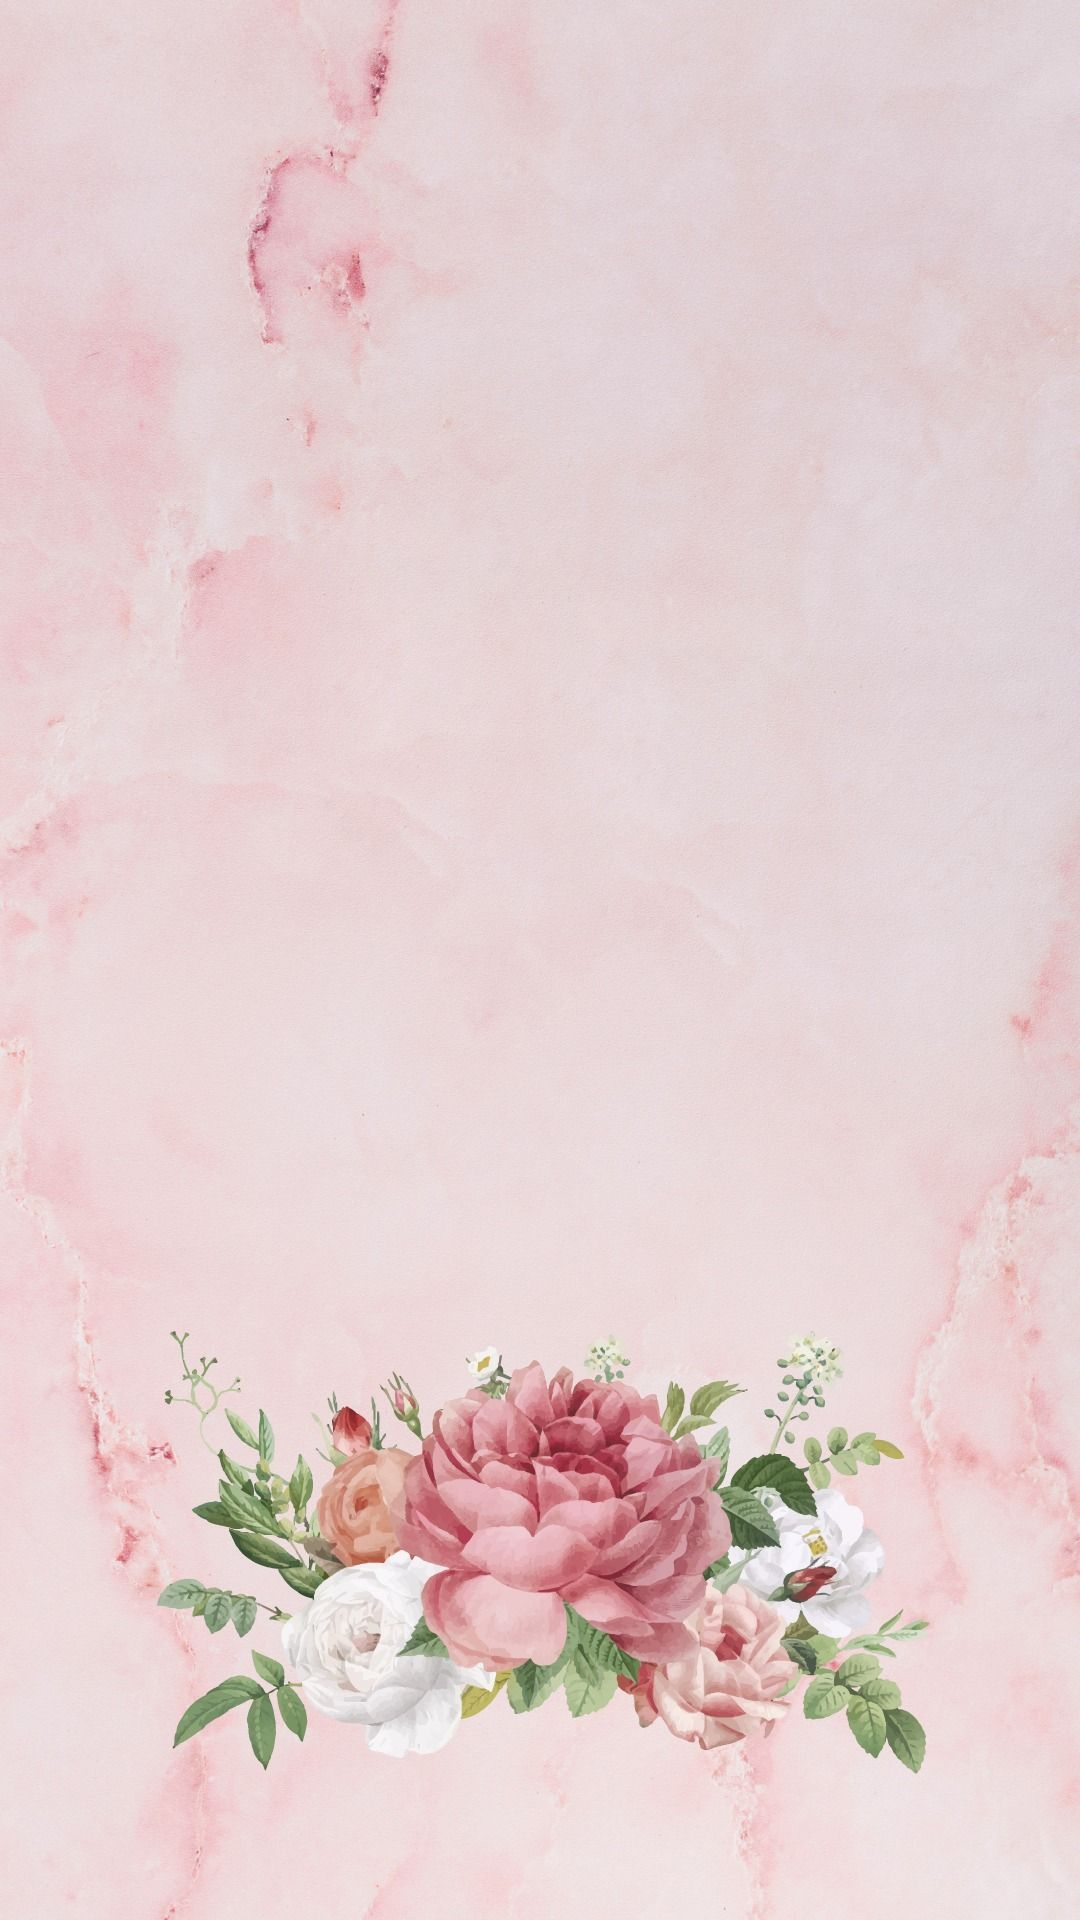 Aesthetic Pink And White Wallpaper Ios Gold Wallpaper Background Flower Iphone Wallpaper Floral Wallpaper Iphone